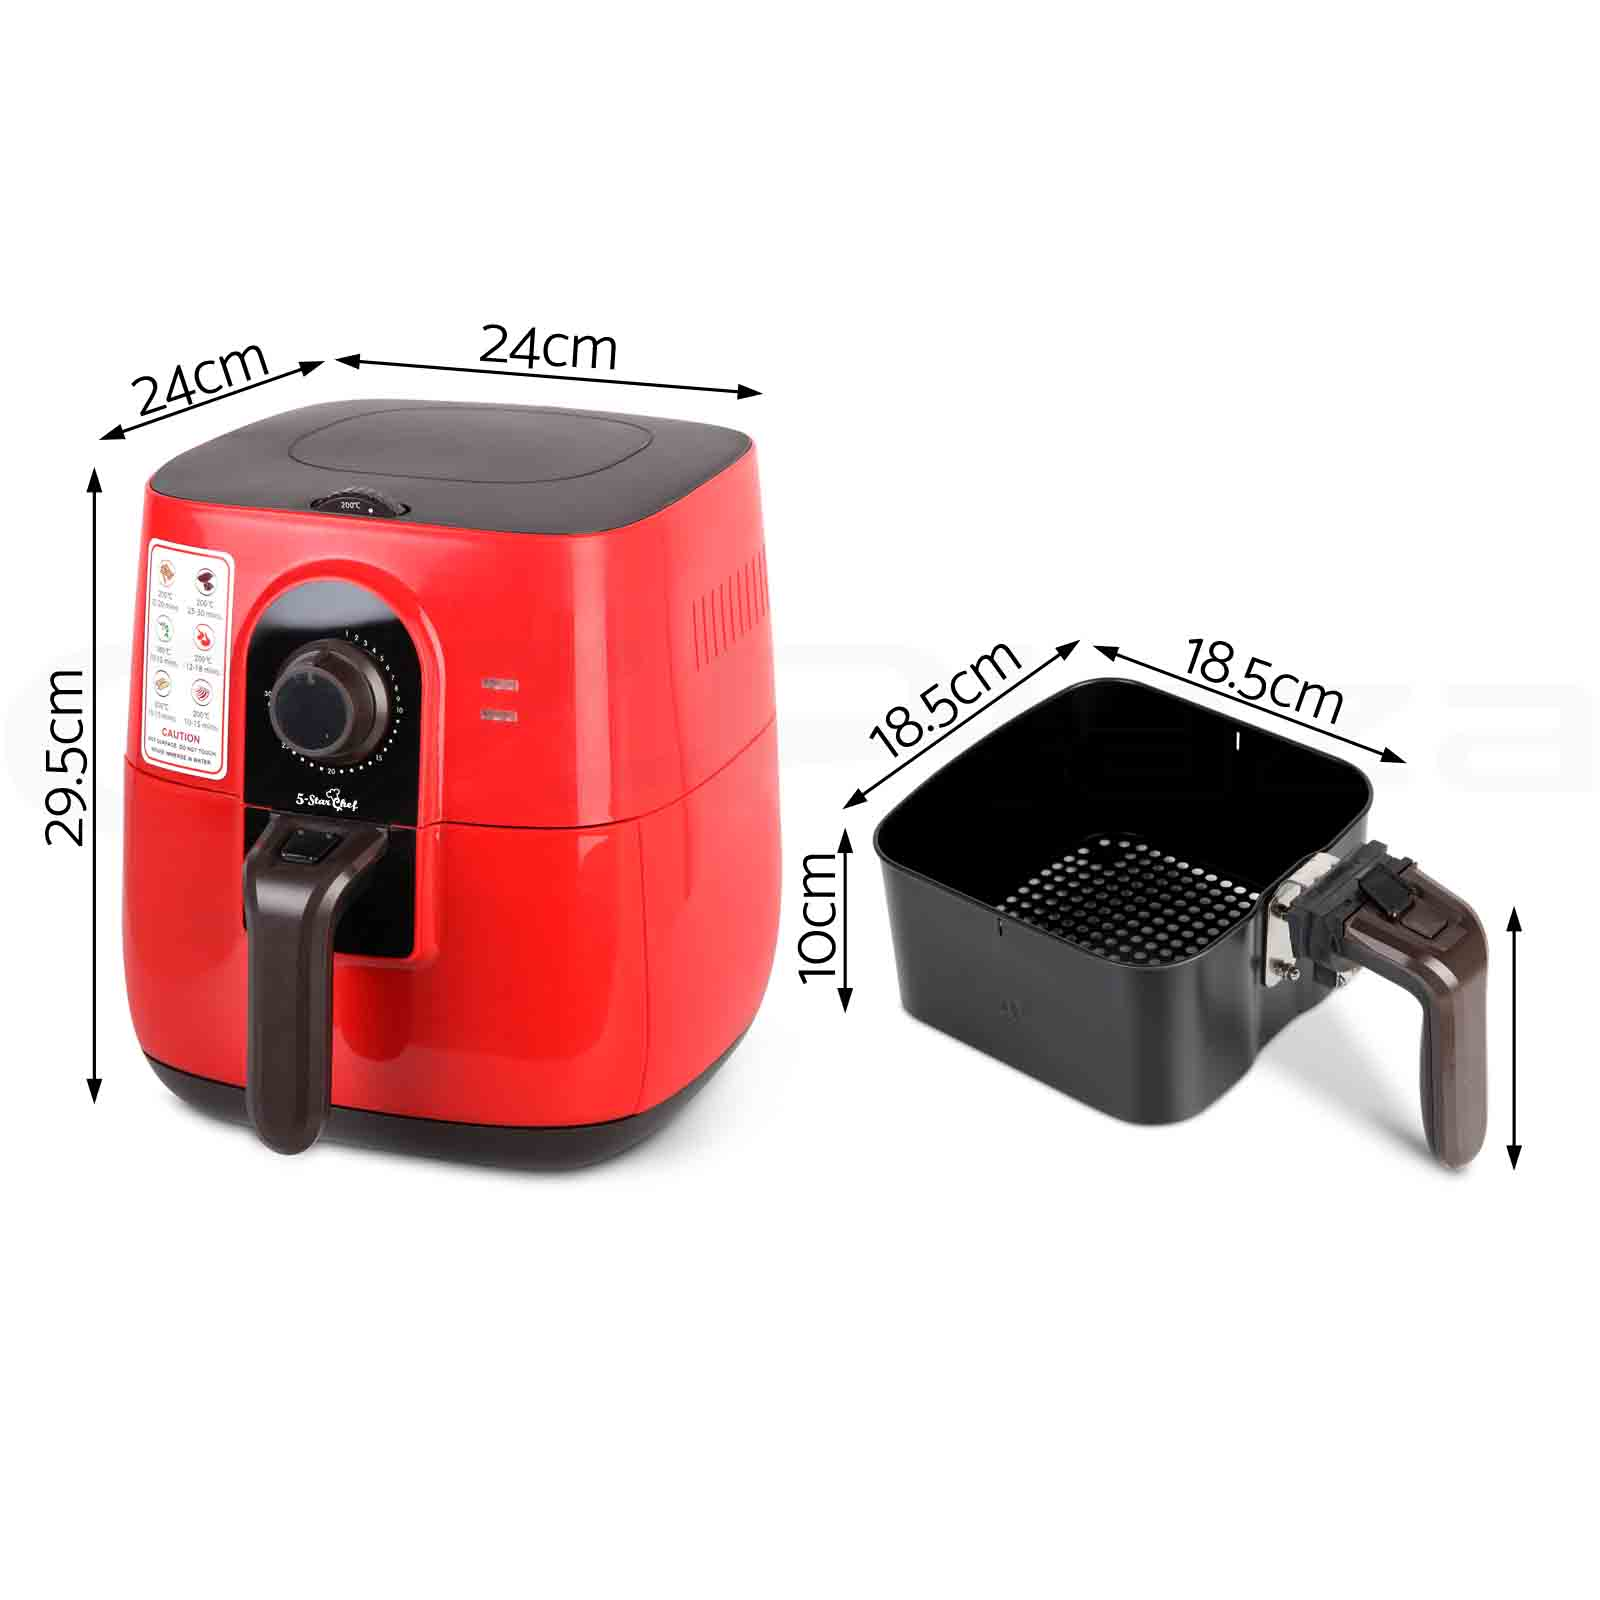 New Air Cooker ~ New l air fryer star chef low fat oil free rapid deep